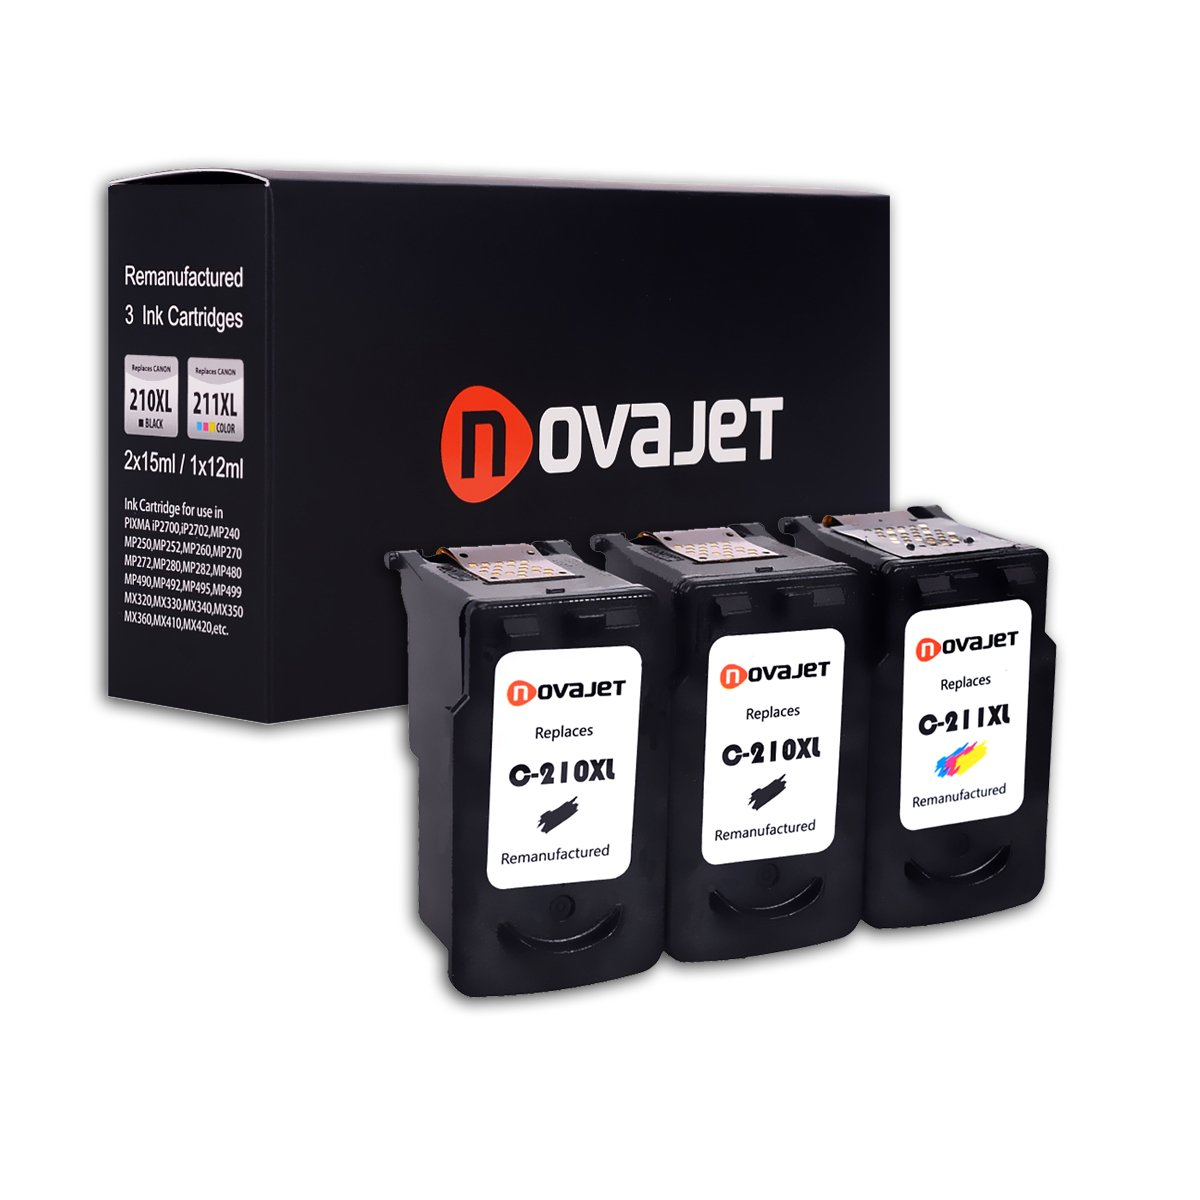 Novajet 3 Pack Remanufactured Ink Cartridge Replacement For Canon PG 210XL & CL 211XL (2 Black,1 Color)Comptaible With Canon PIXMA IP2700 2702 MP240 250 270 280 490 495 499 MX320 MX330 340 350 360